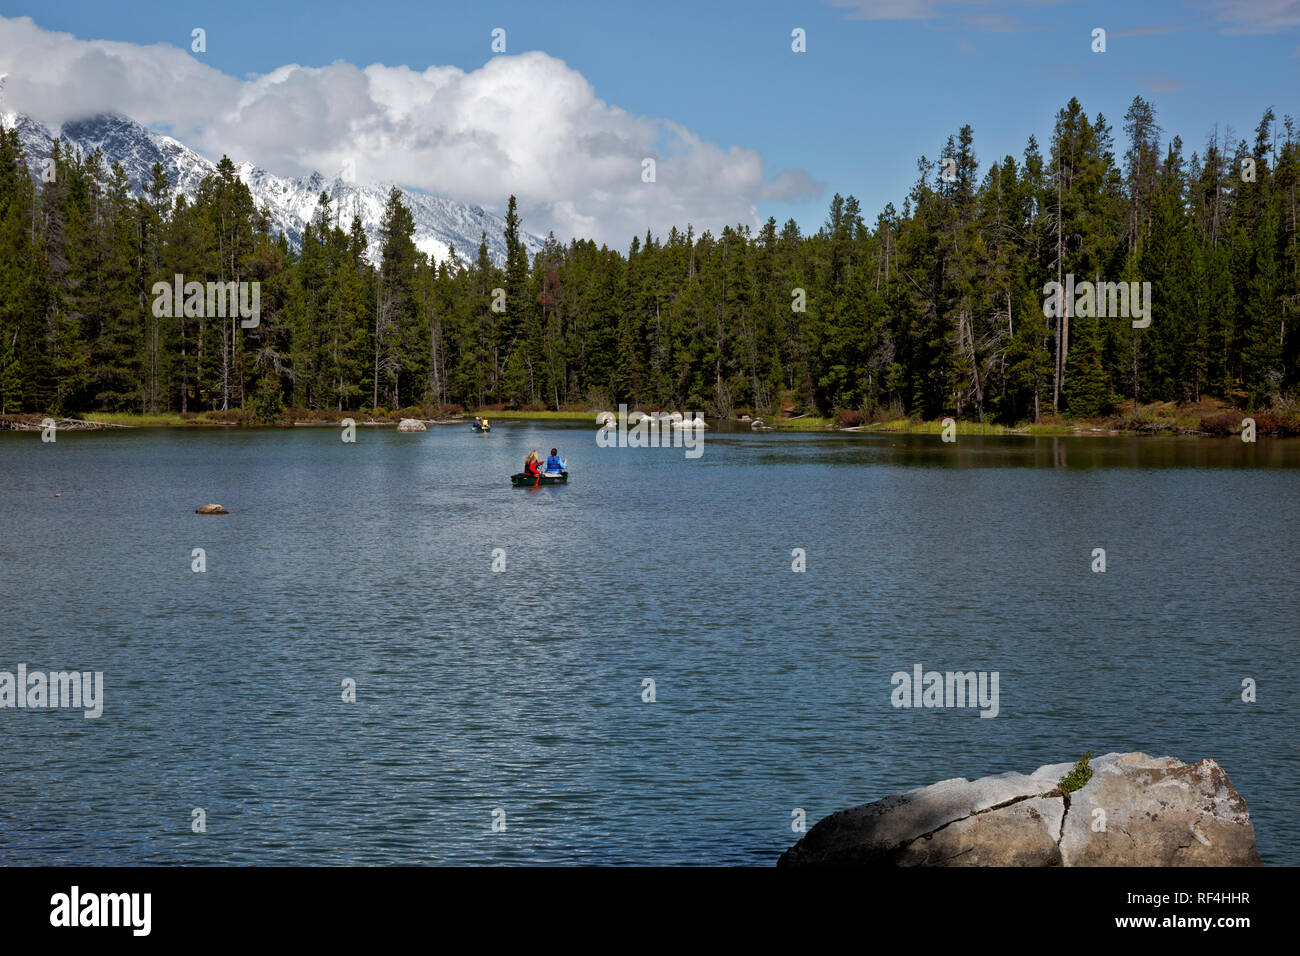 WY02909-00...WYOMING - Canoes on String Lake heading to the portage route over to Leigh Lake in Grand Teton National Park. - Stock Image